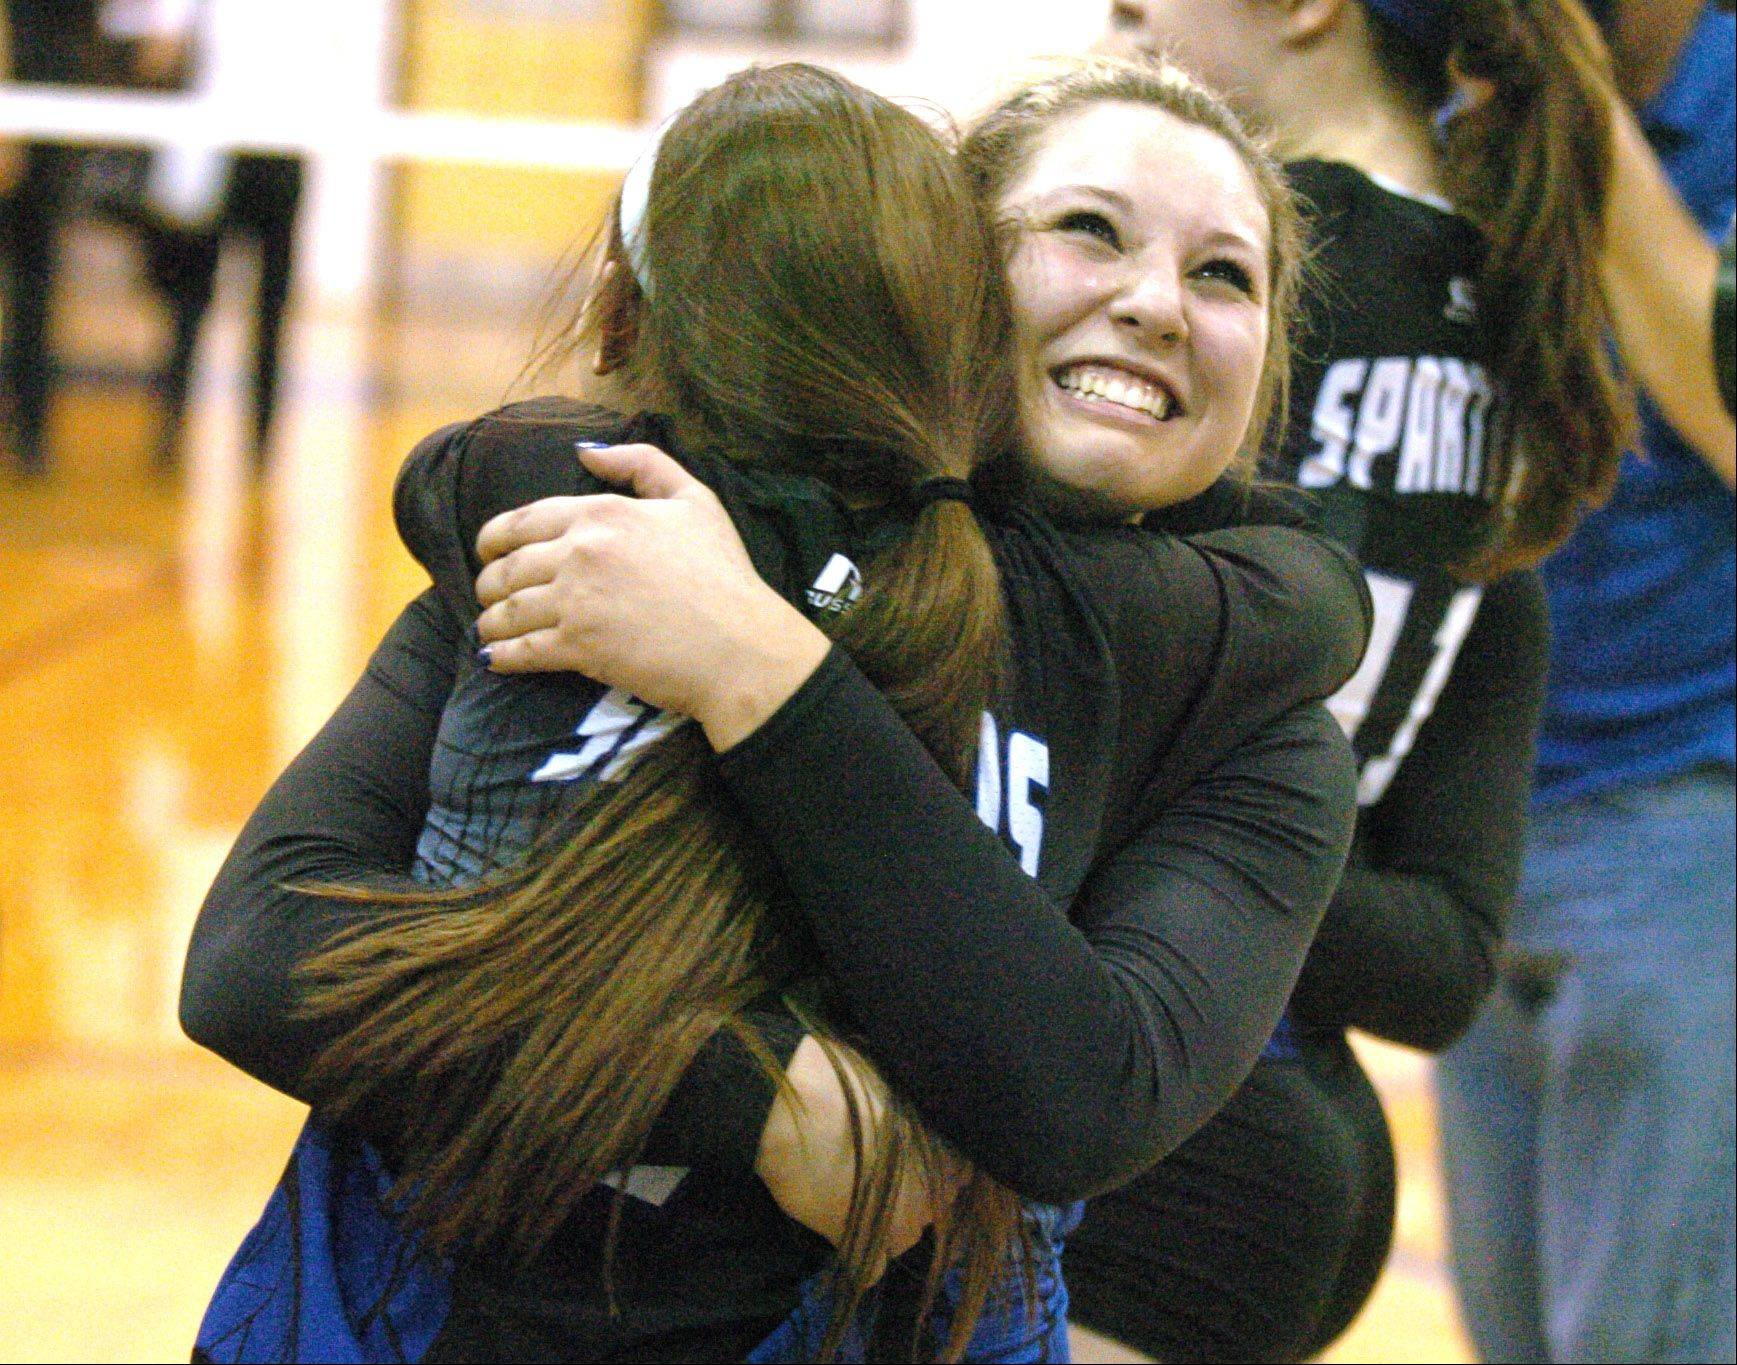 Natalie Murison,left, hugs Kristin Acciavatti after their big win during the St. Francis vs. Joliet Catholic game at Glenbard South Thursday. This was a the Class 3A Sectional Final.